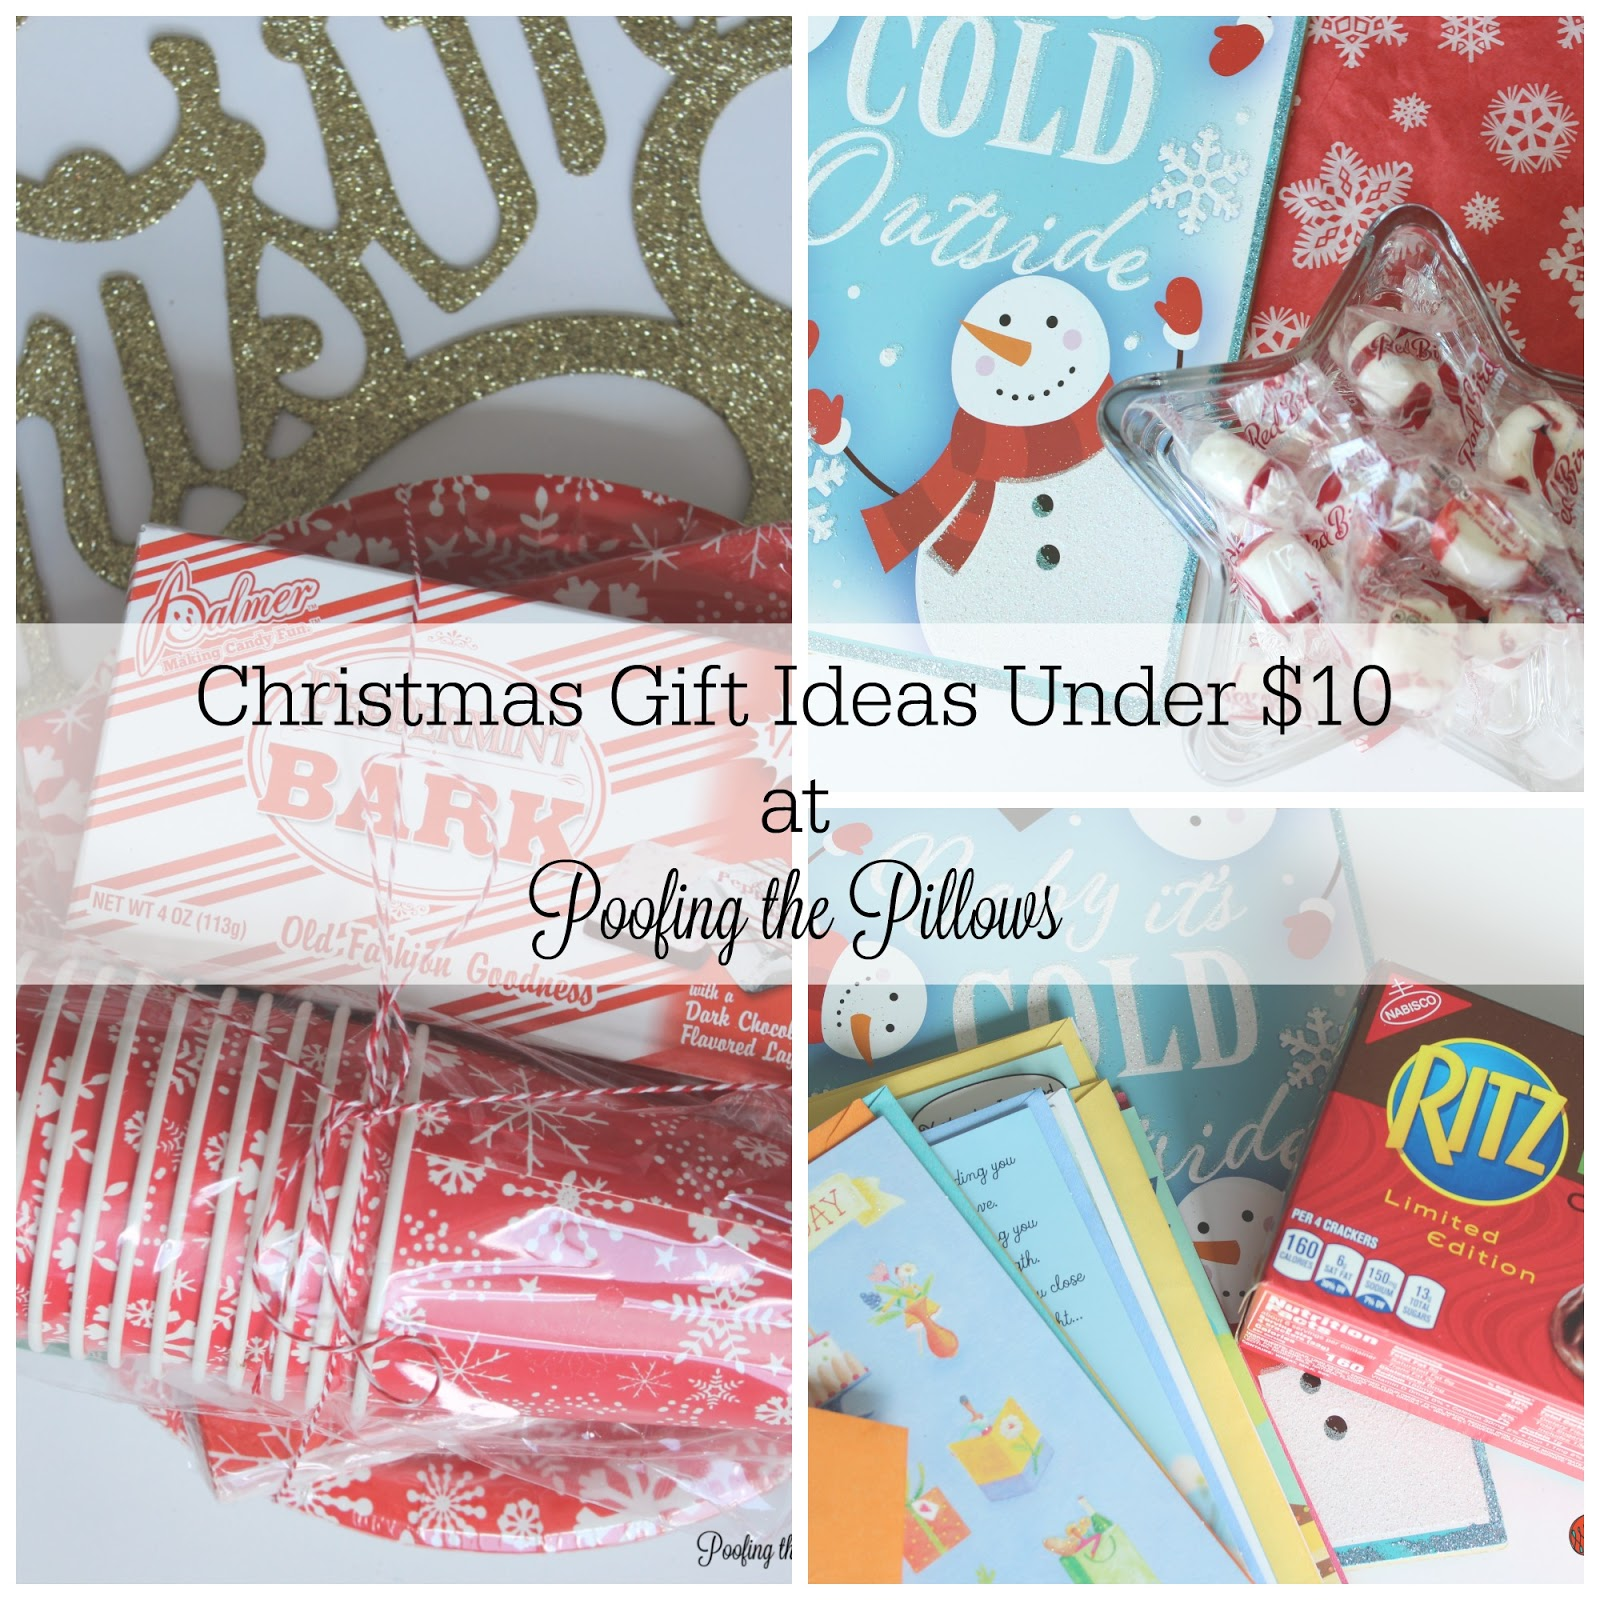 Christmas gift ideas under $10 at Poofing the Pillows.